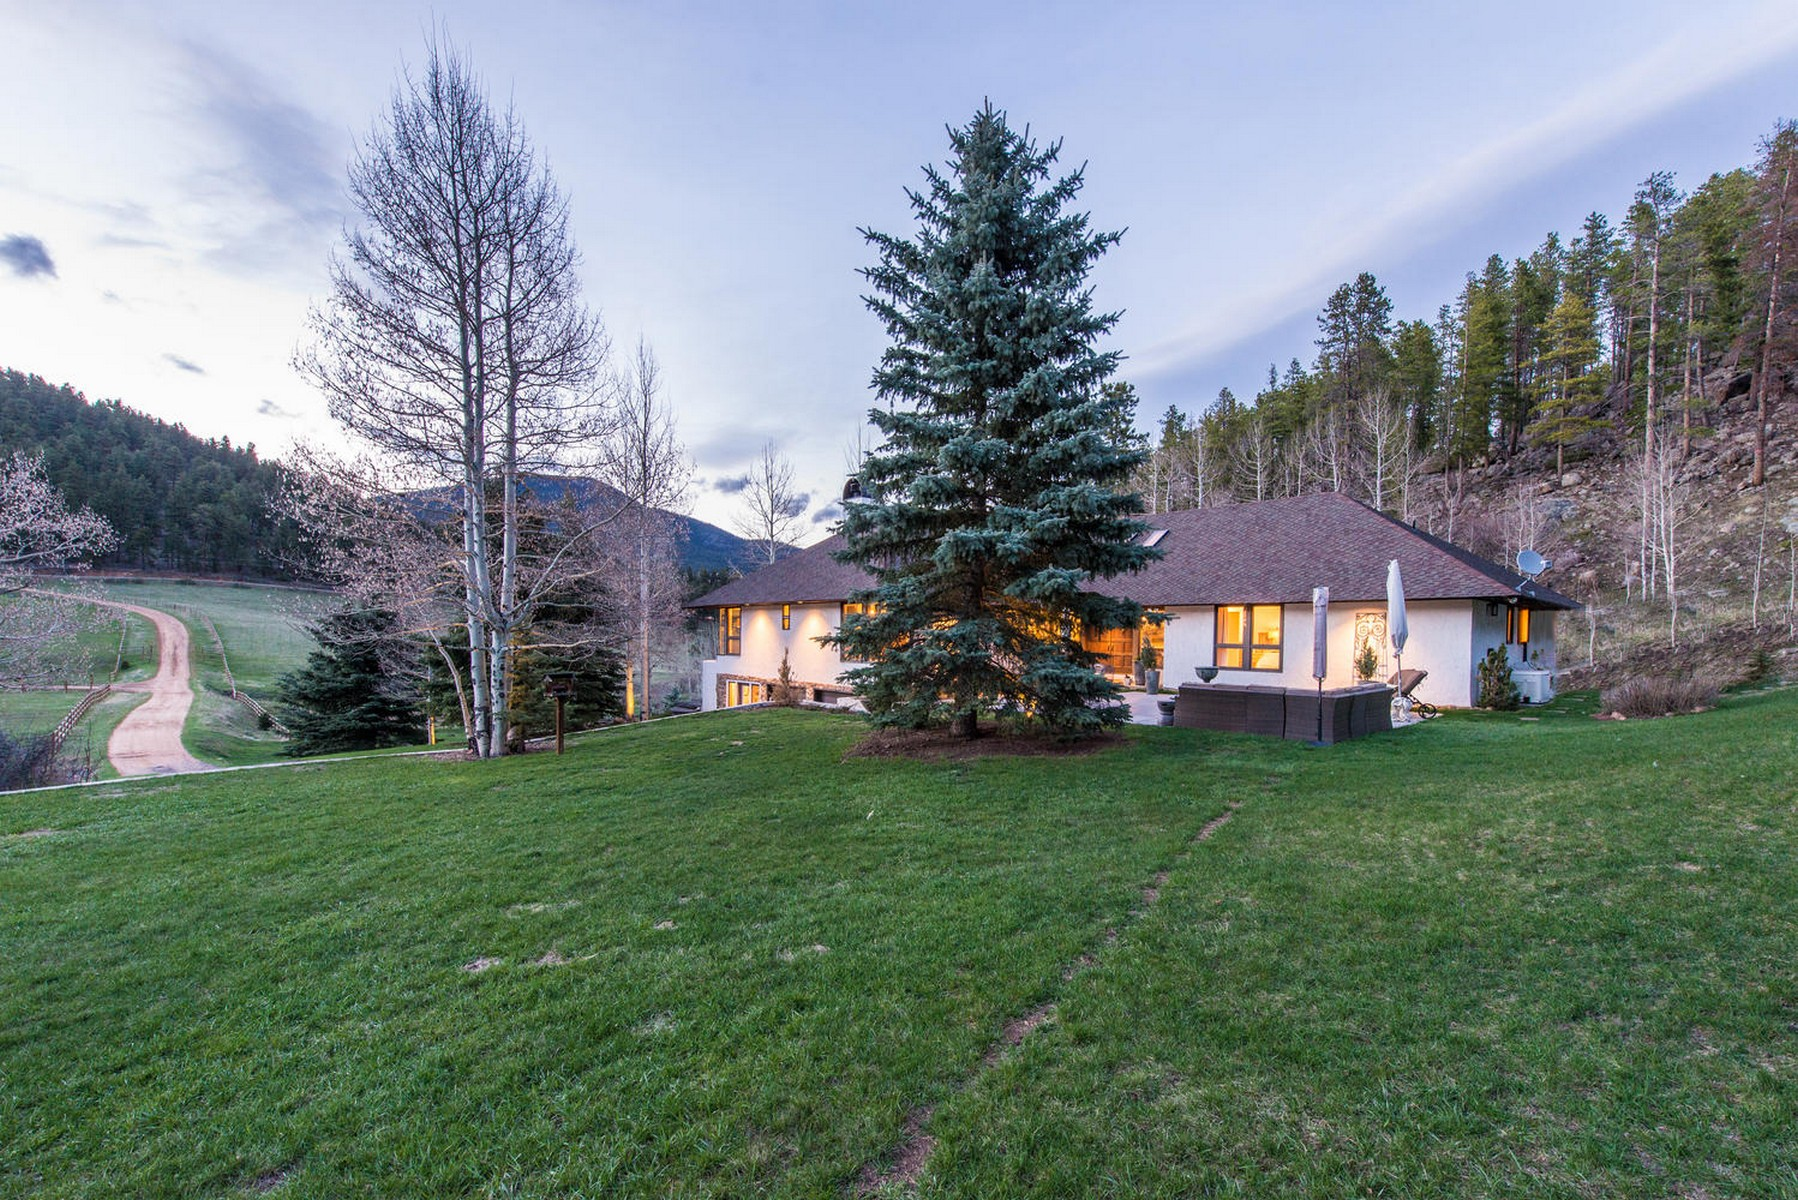 Casa Unifamiliar por un Venta en Whispering Creek Estate 924 Yankee Creek Road Evergreen, Colorado, 80439 Estados Unidos